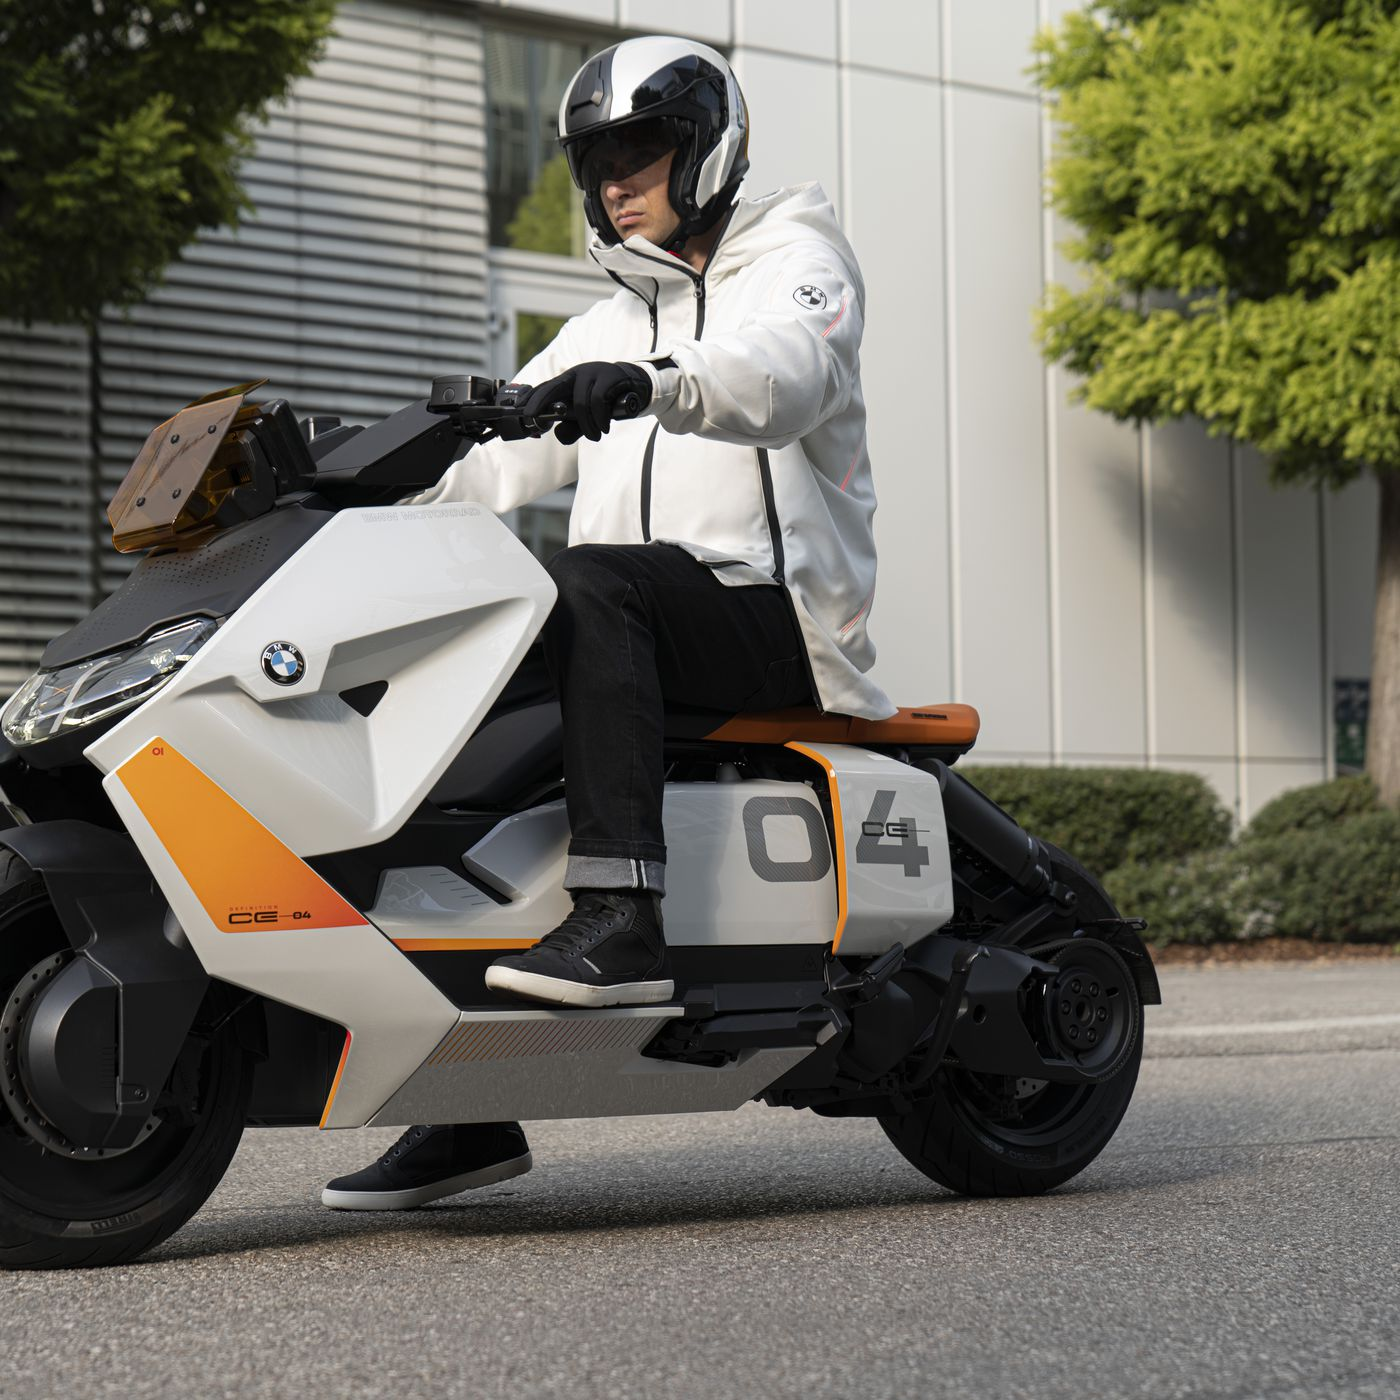 Bmw S New Electric Scooter Concept Aims To Be Your Perfect Cyberpunk Mount The Verge